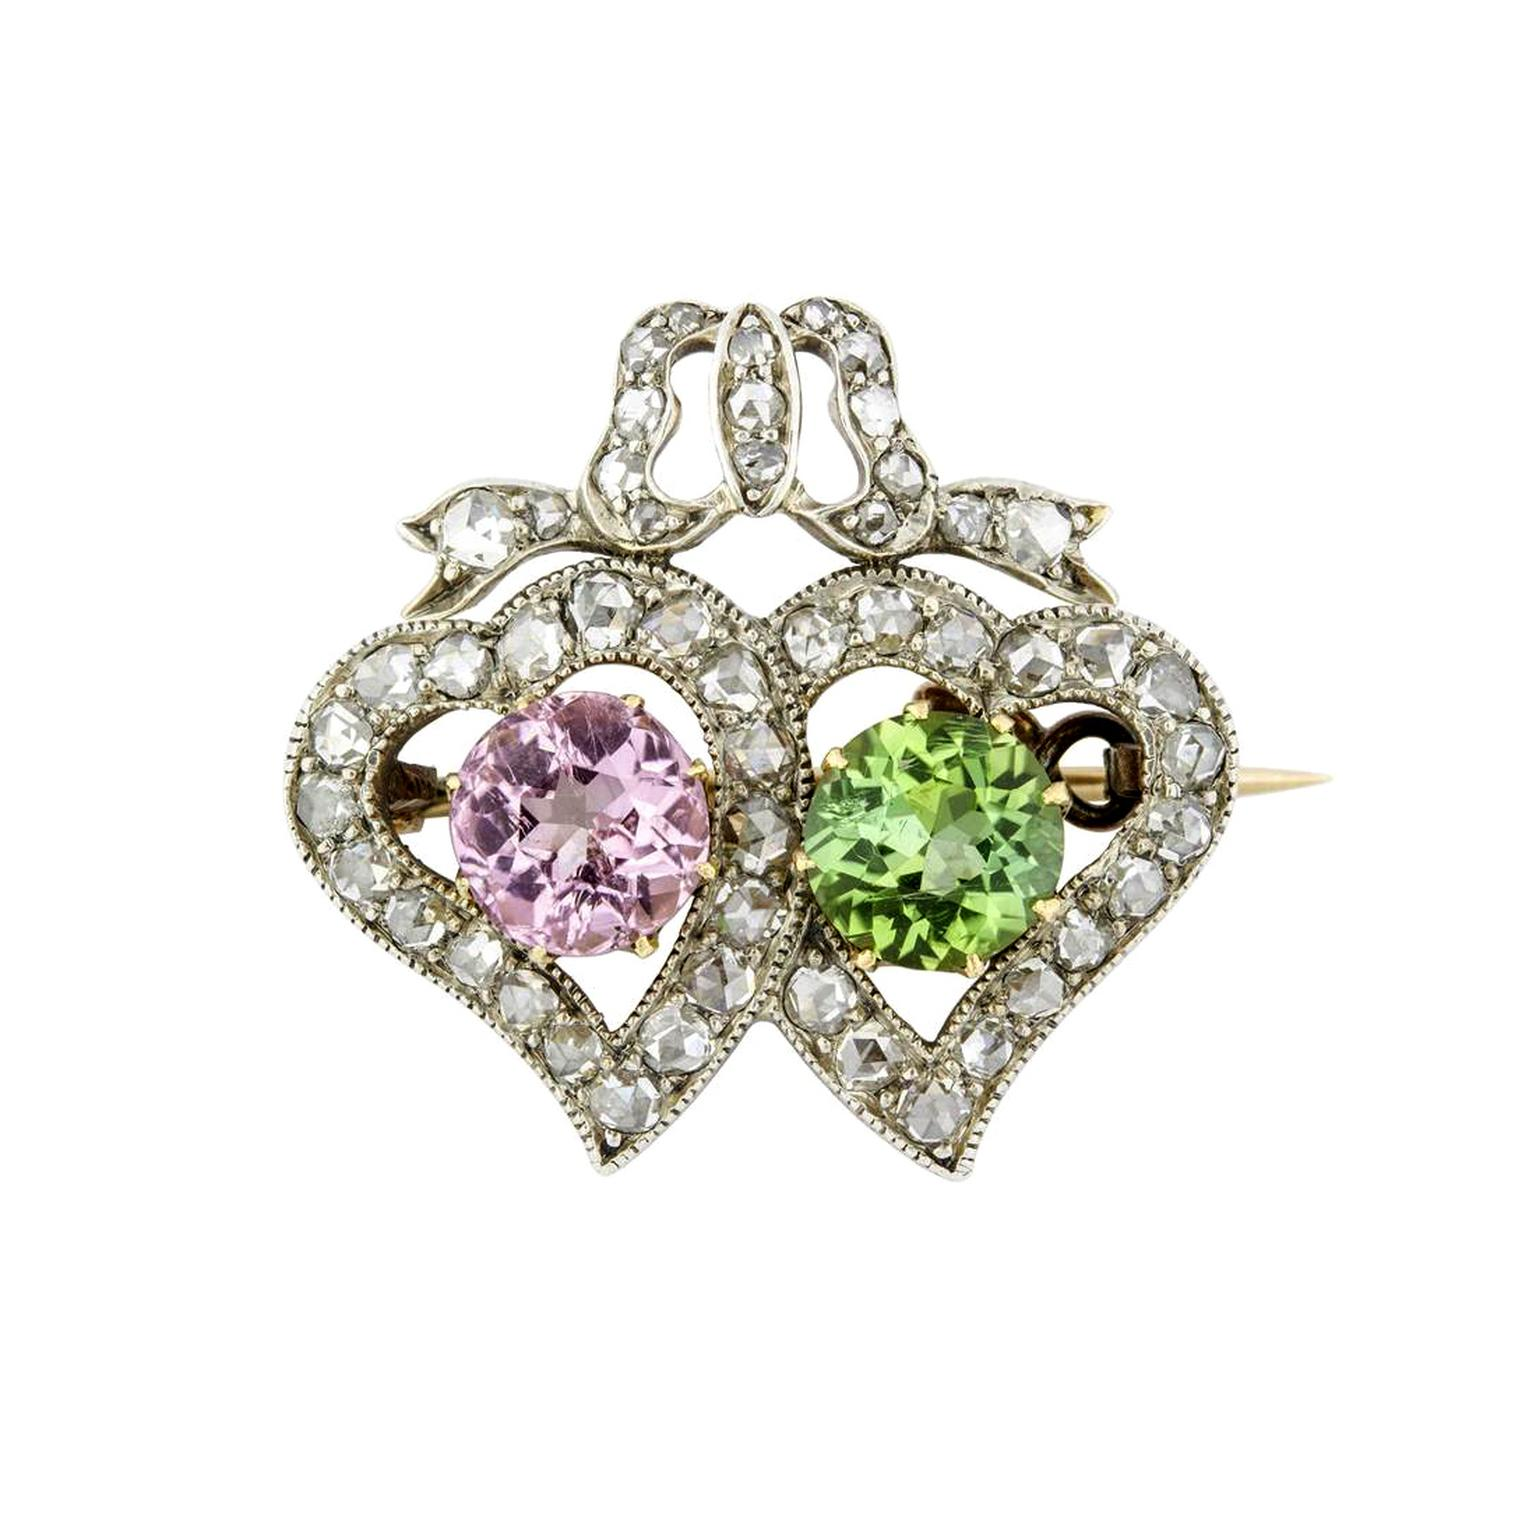 Bentley & Skinner Victorian heart brooch